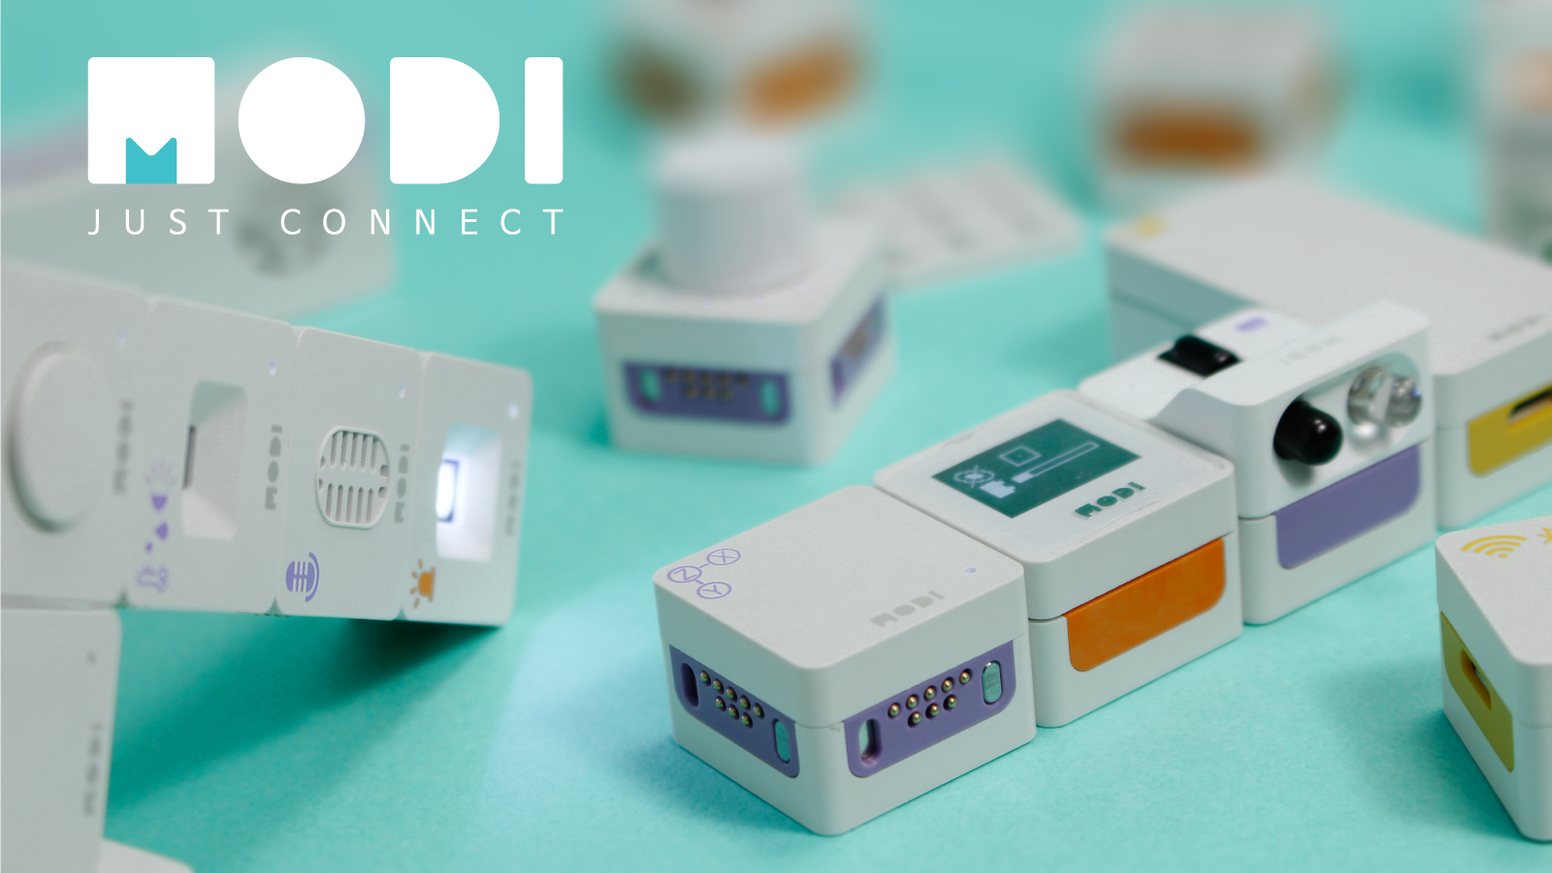 MODI is a modular device for DIY IoT, and robotic creations. Just Connect and Build with MODI module.